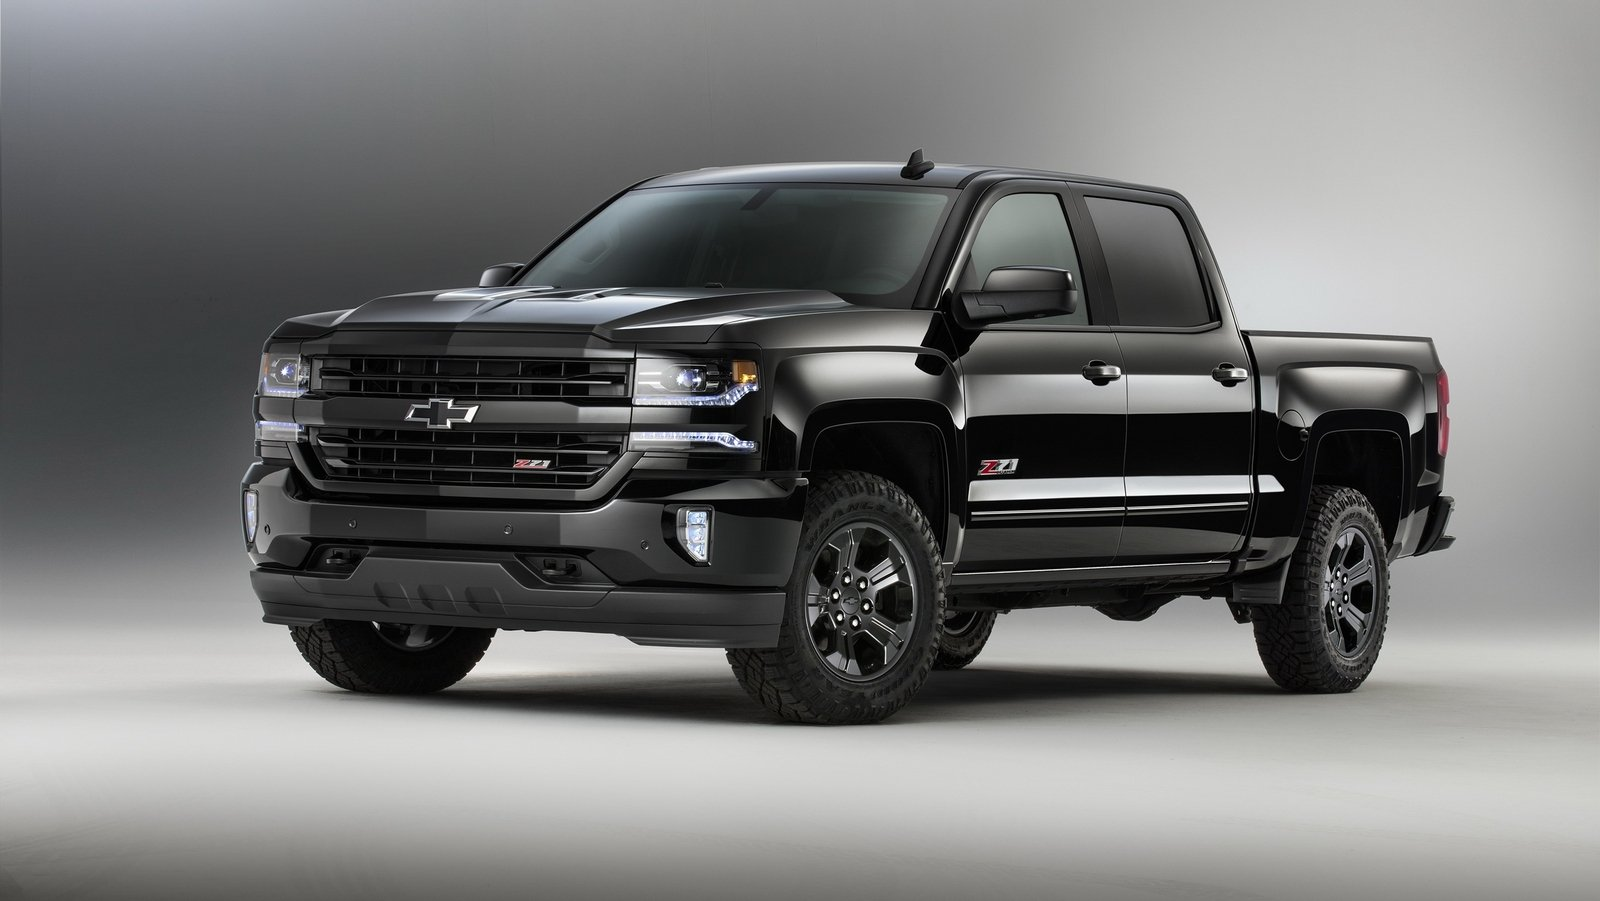 2016 chevrolet silverado 1500 z71 midnight special edition picture 664936 truck review top. Black Bedroom Furniture Sets. Home Design Ideas